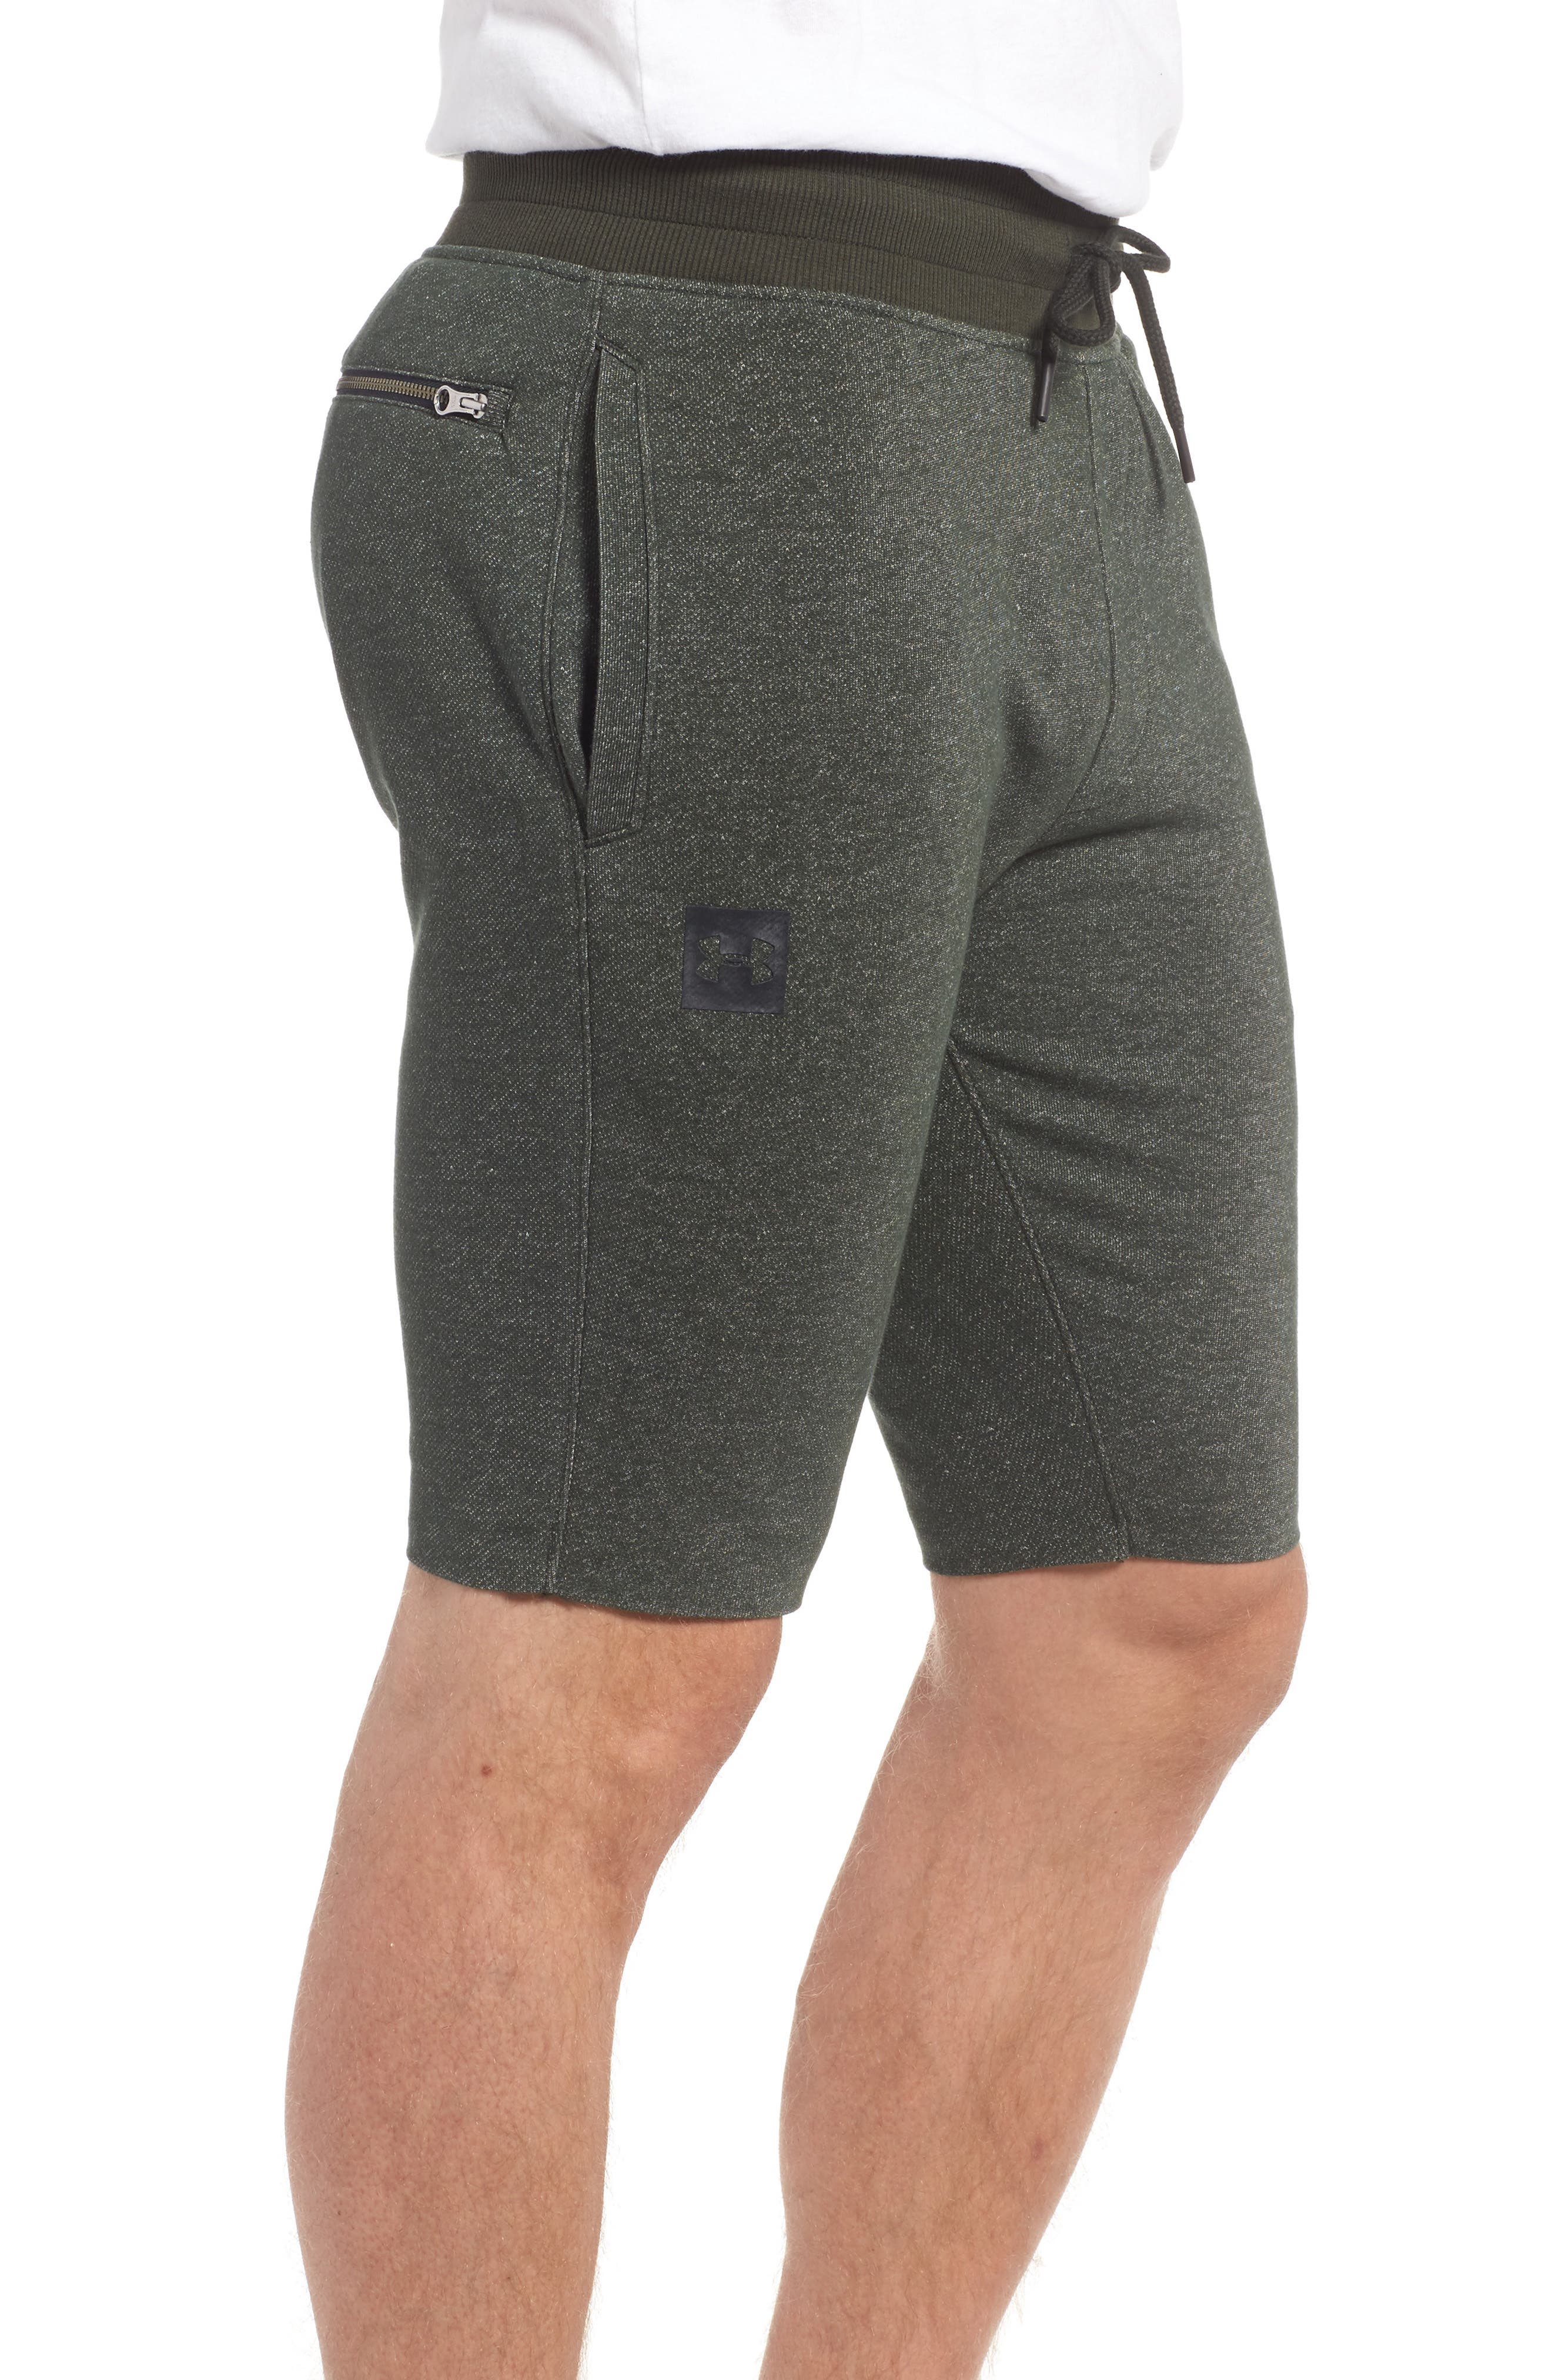 Terry Knit Athletic Shorts,                             Alternate thumbnail 3, color,                             Artillery Green / Black